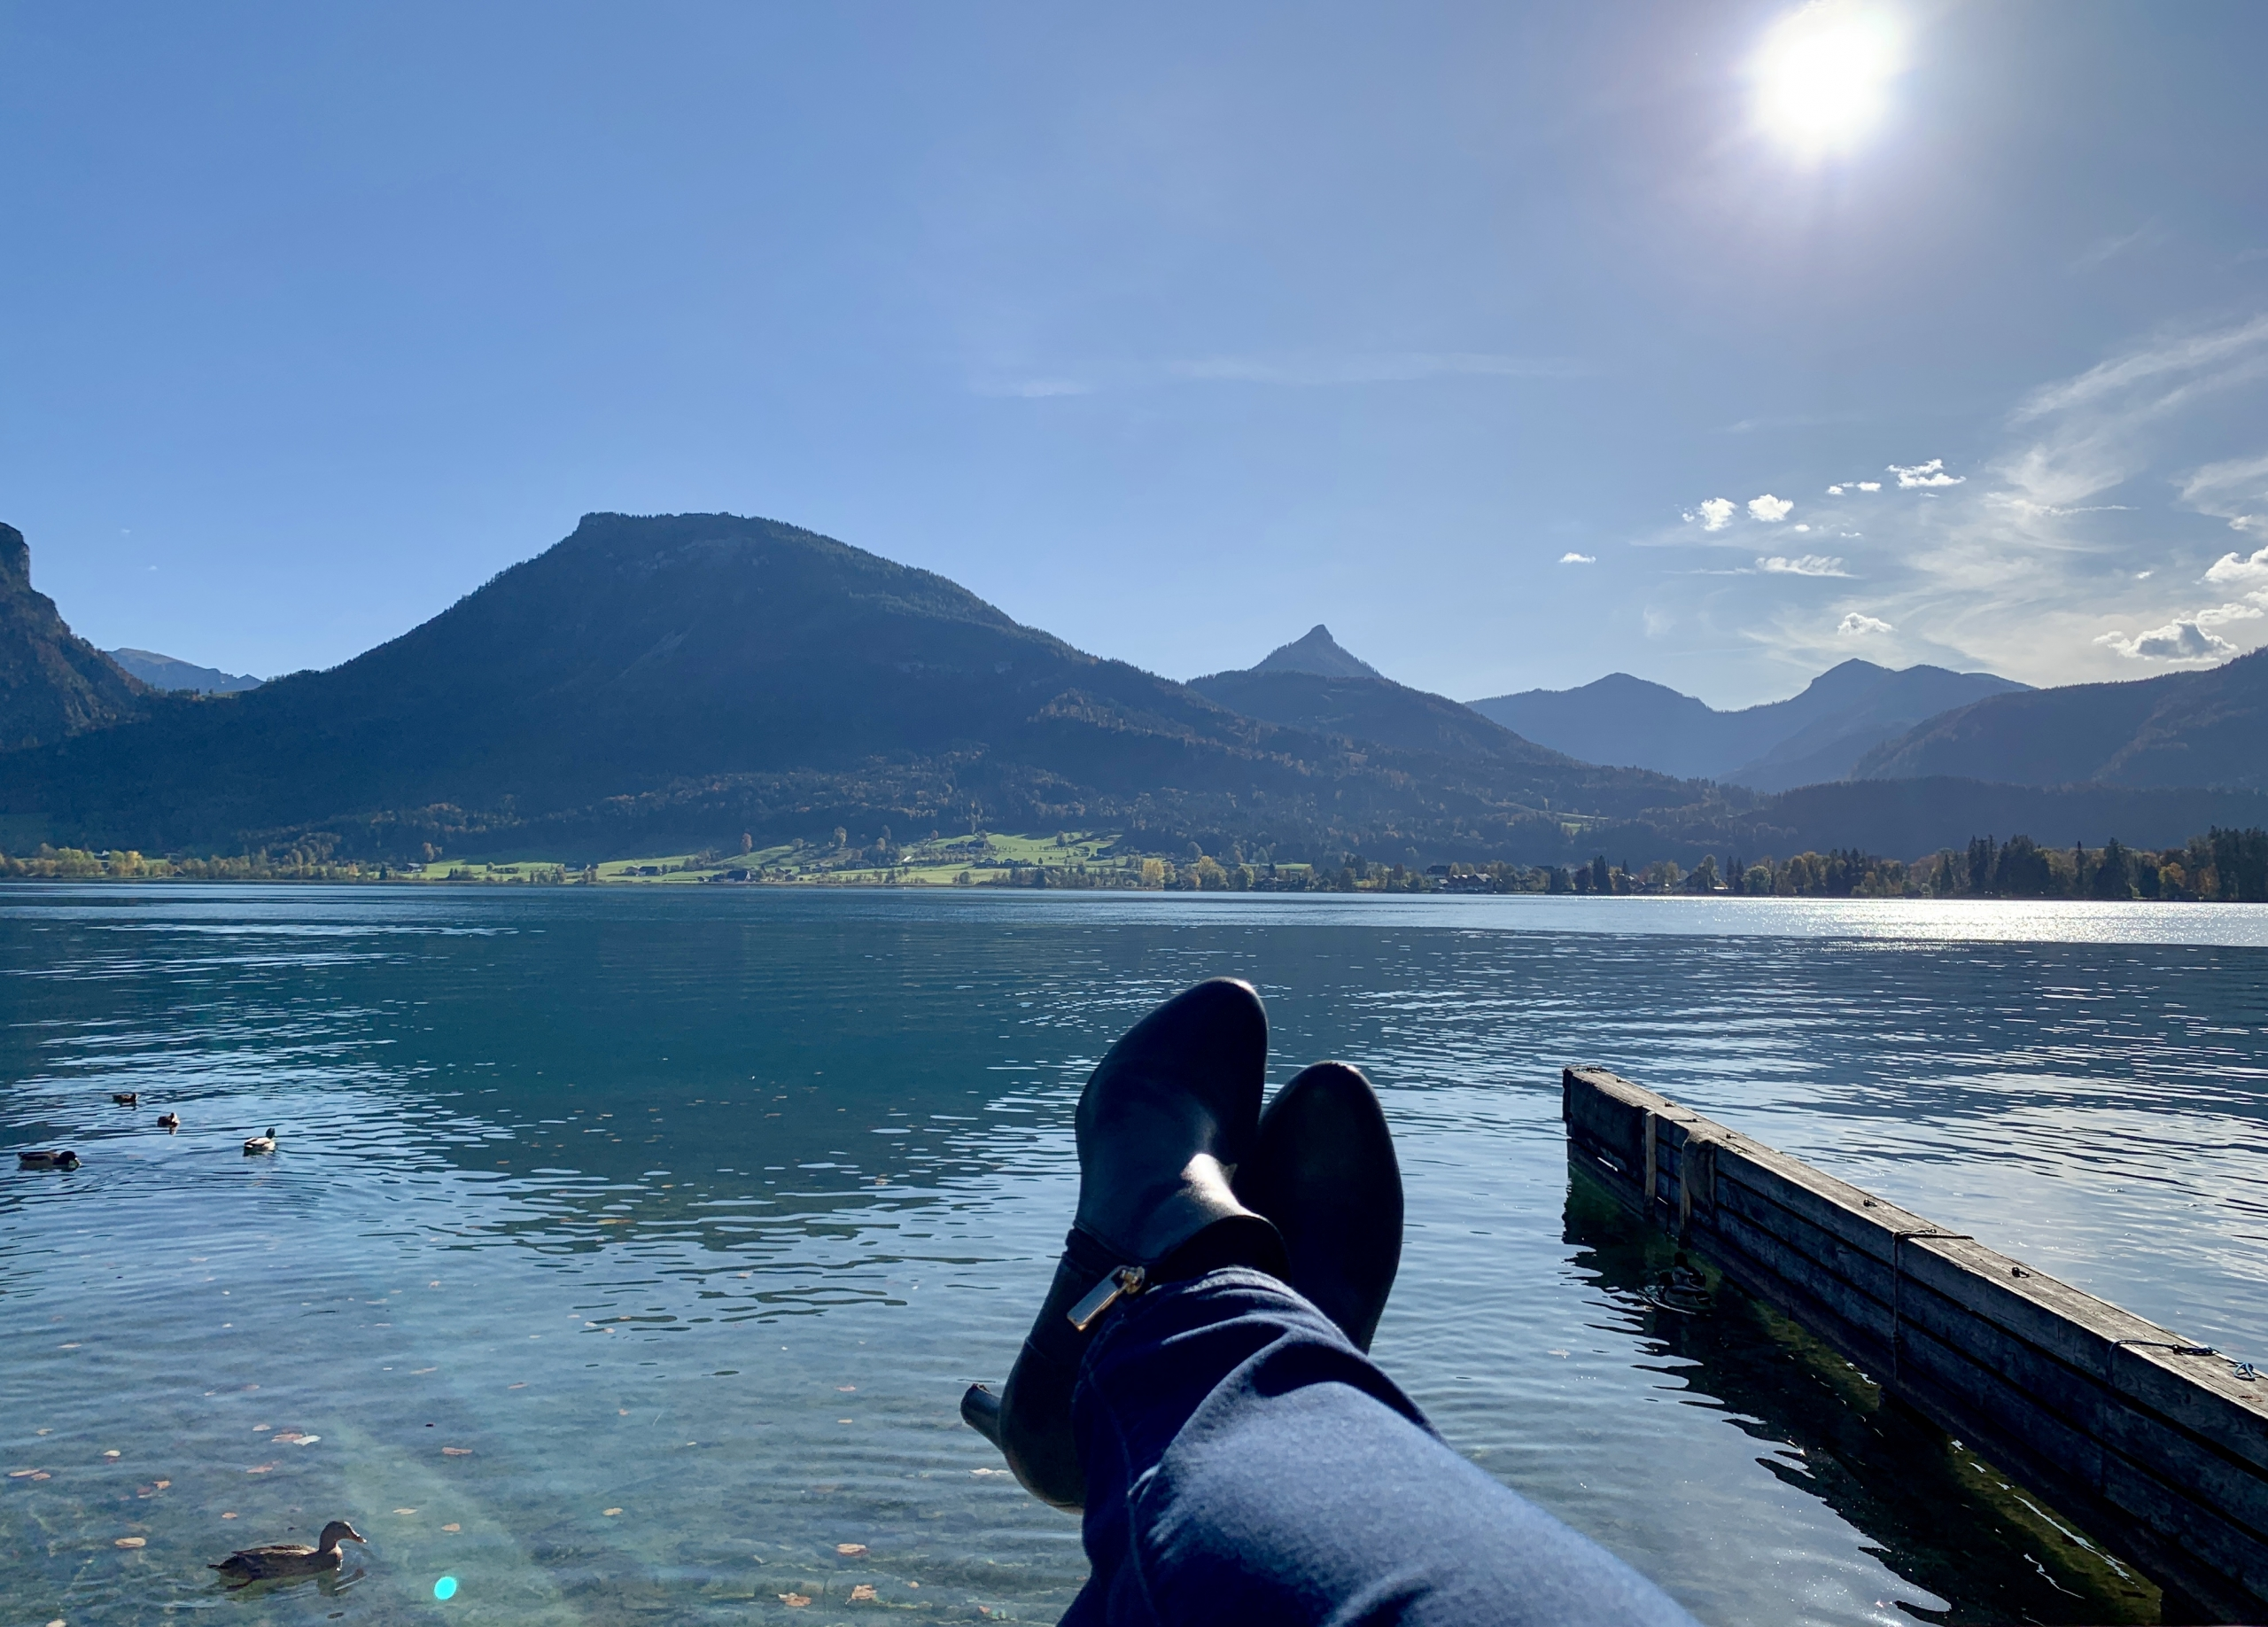 feet by St. Wolfgangsee in the Austrian Lake District